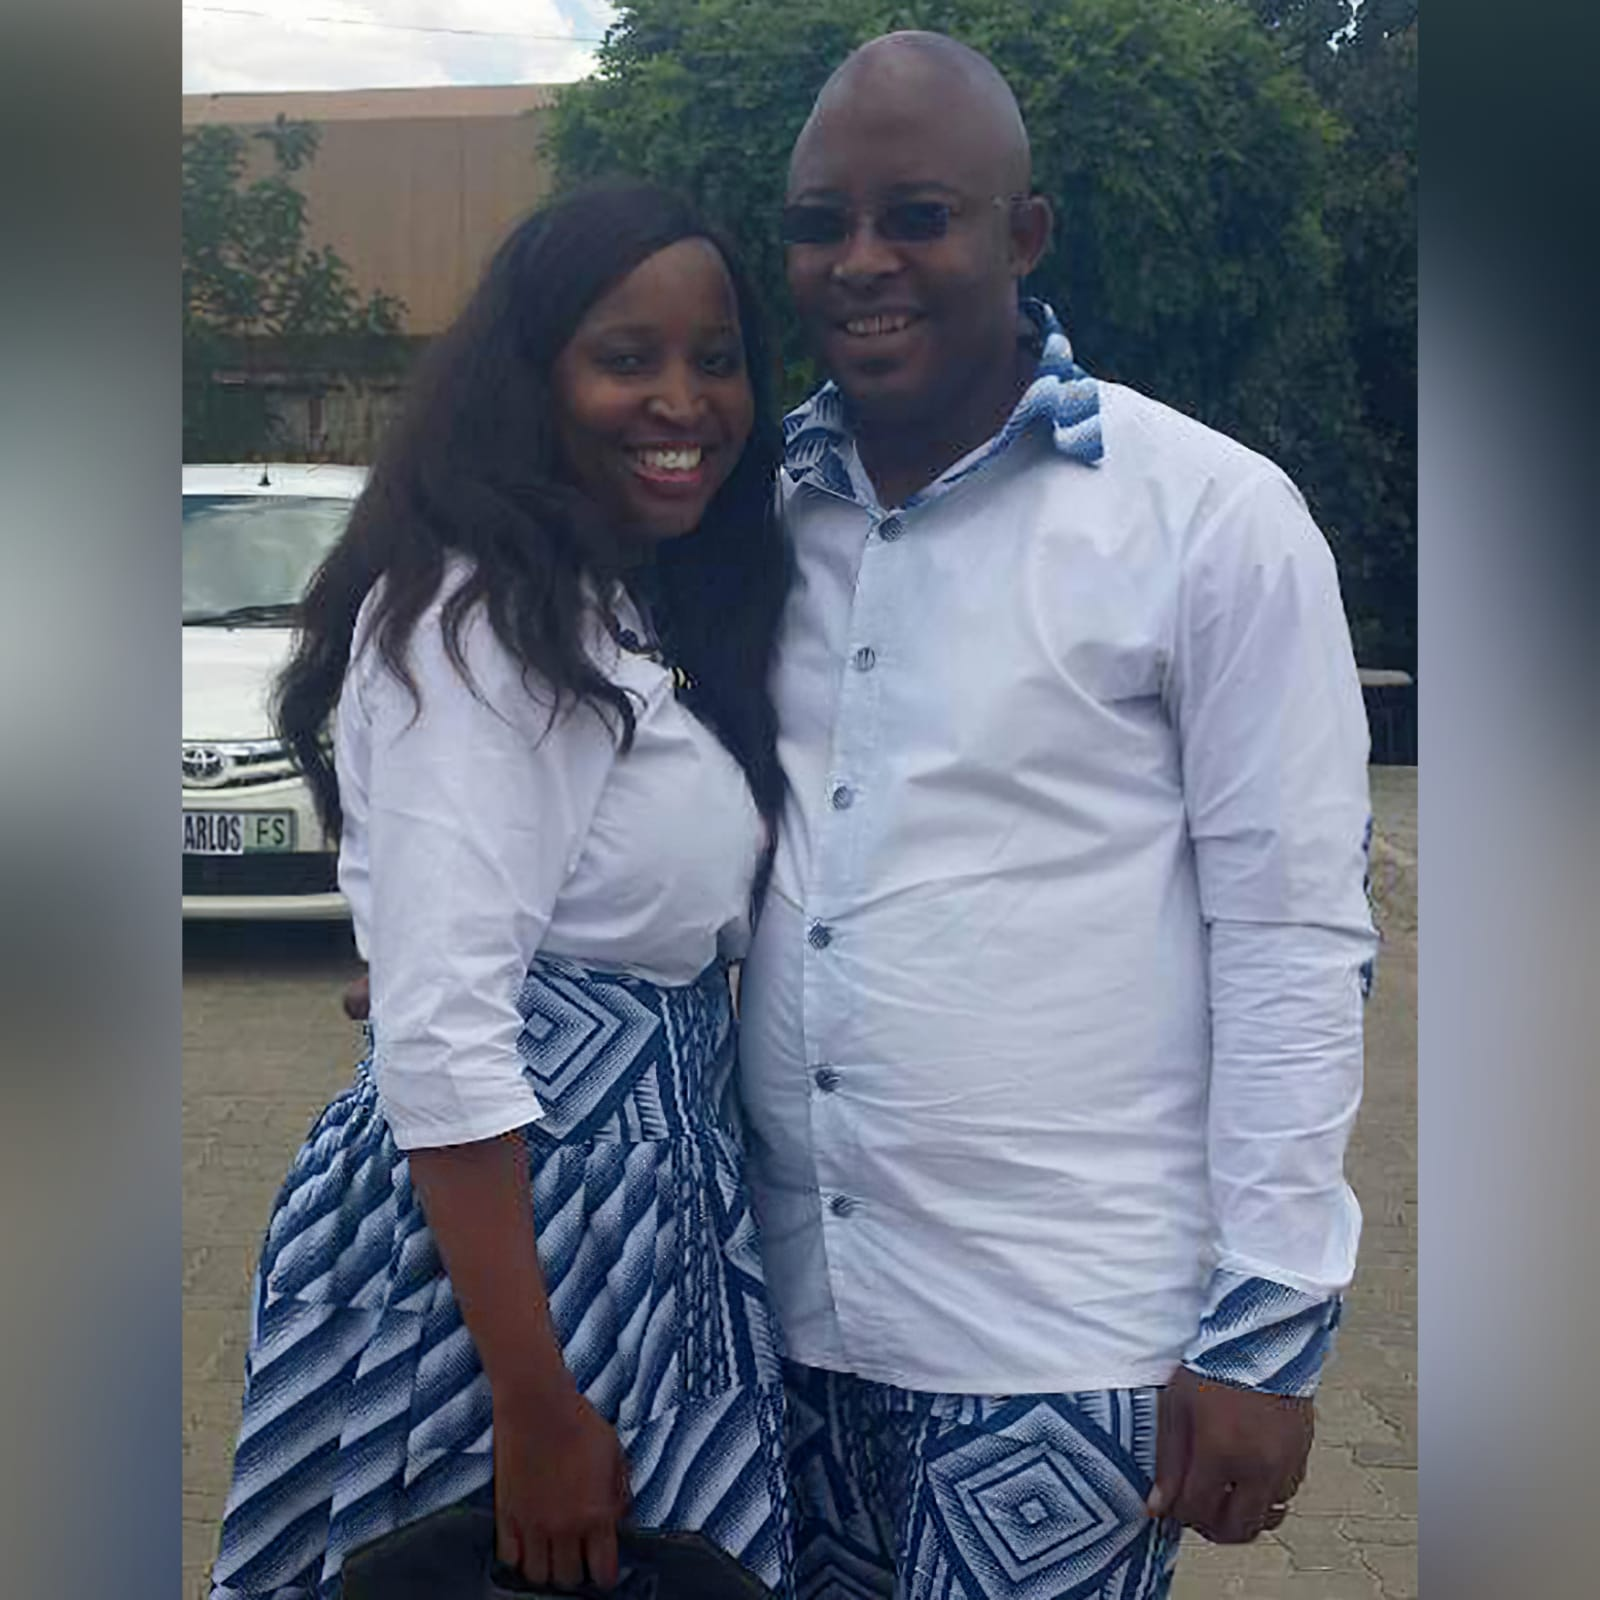 Matching couples traditional shweshwe wedding attire 1 lady: high waisted gathered traditional skirt with white 3/4 sleeve blouse. Gent: trousers and shirt with detailed collar, cuffs and elbow patches. Traditional wedding attire.